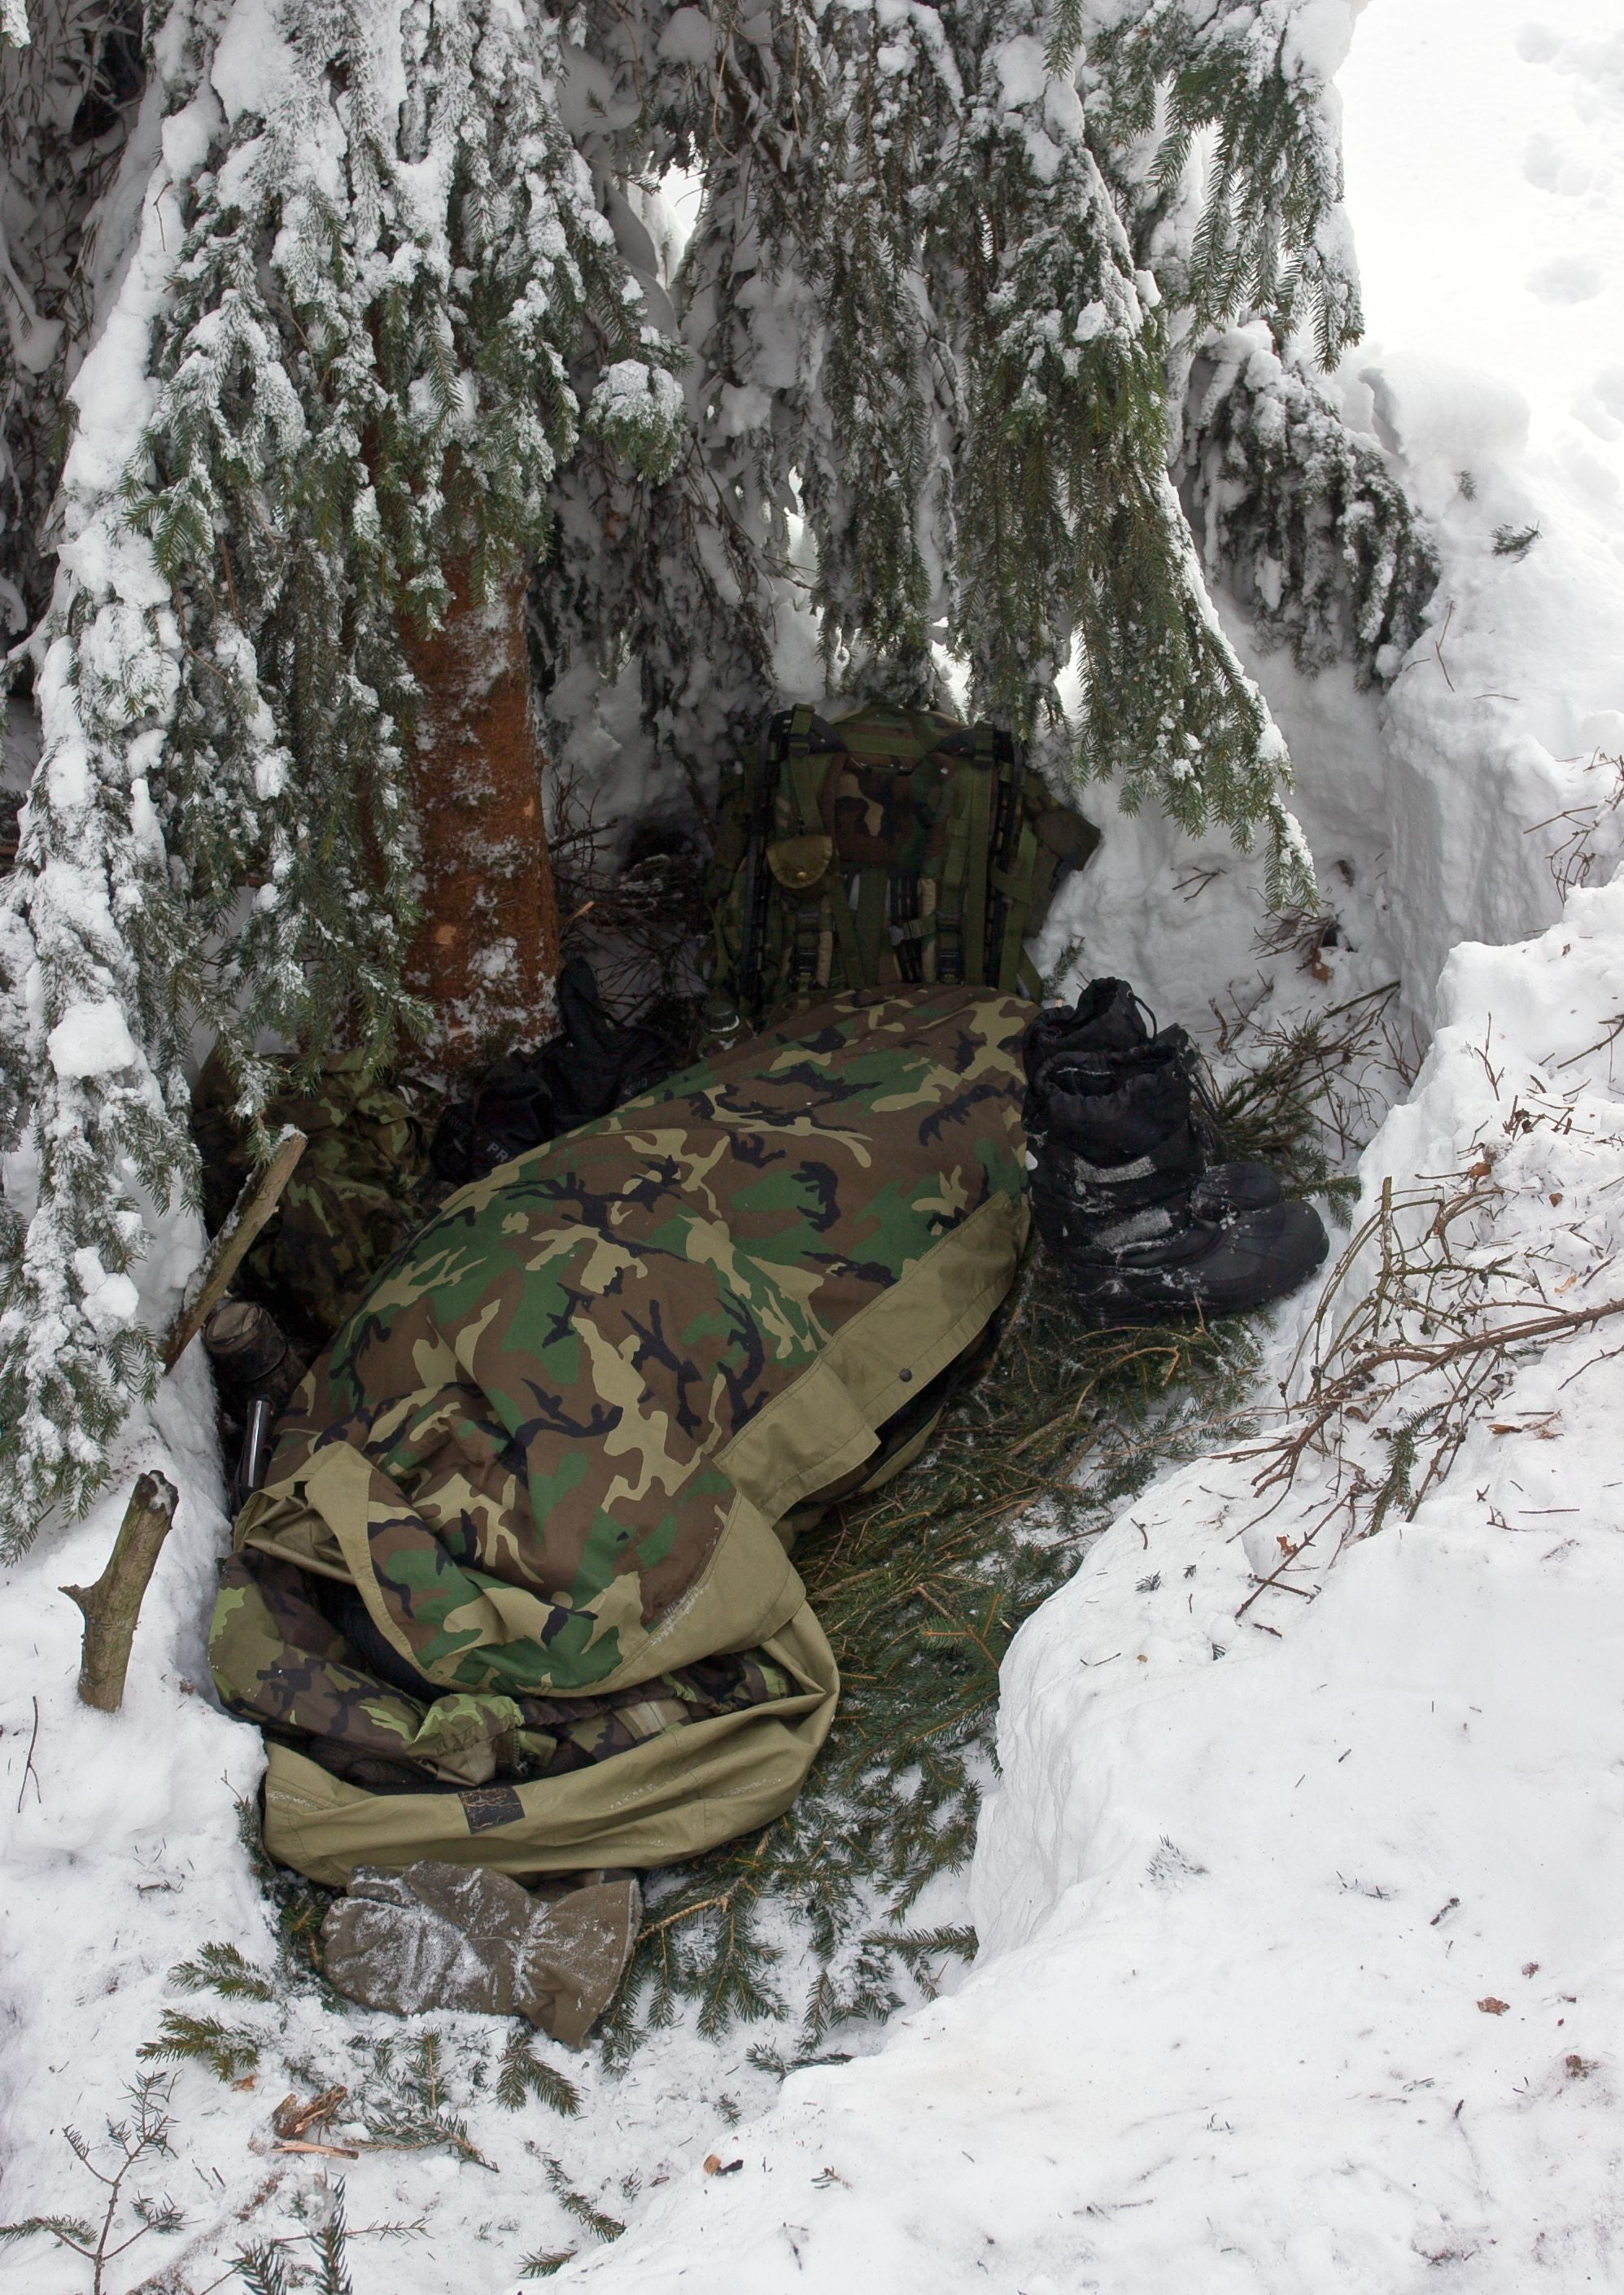 Survival shelter using a spruce tree in the winter time